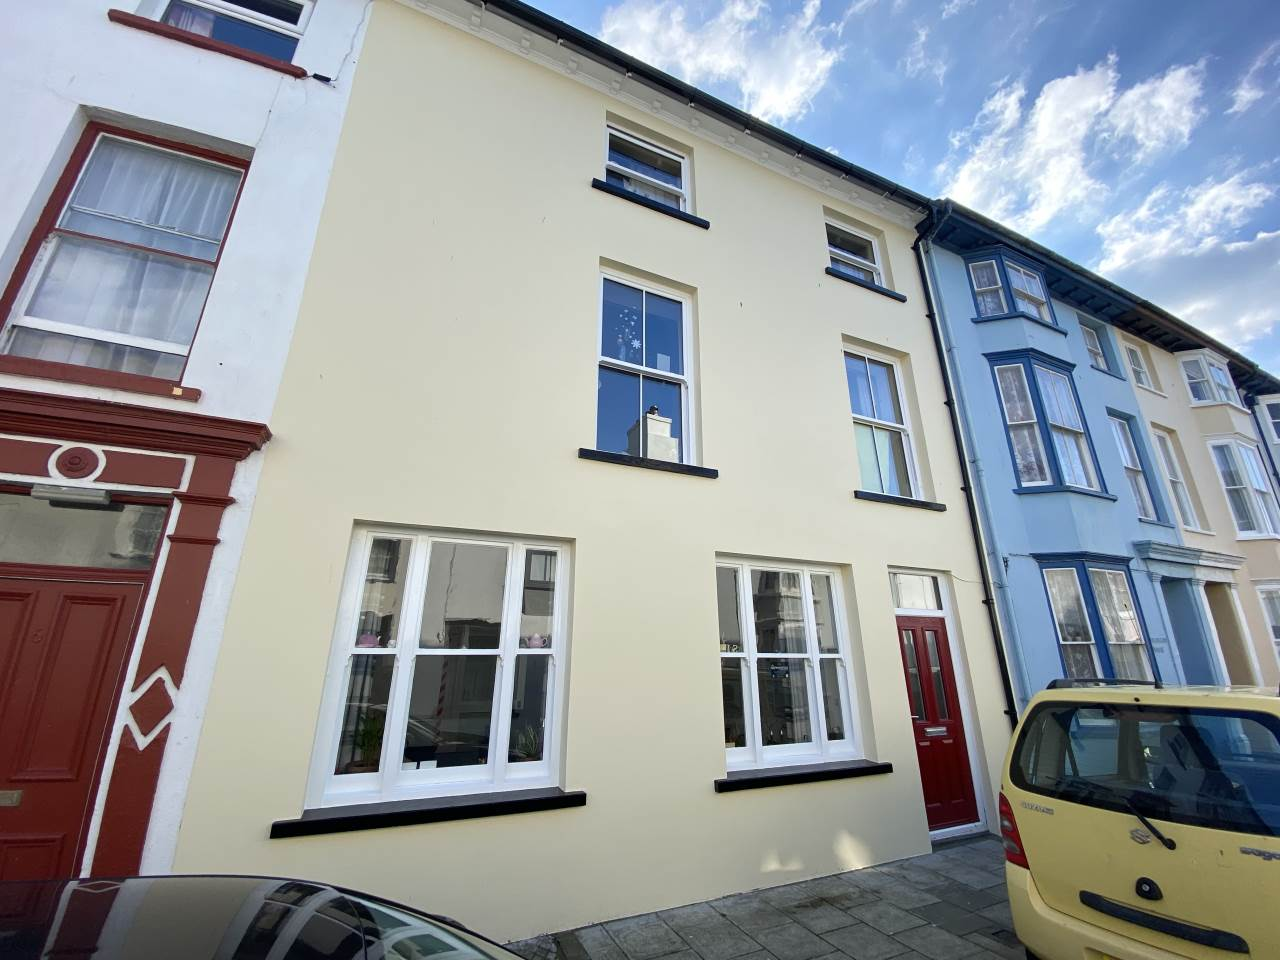 5 bed house to rent in Aberystwyth, Ceredigion, SY23